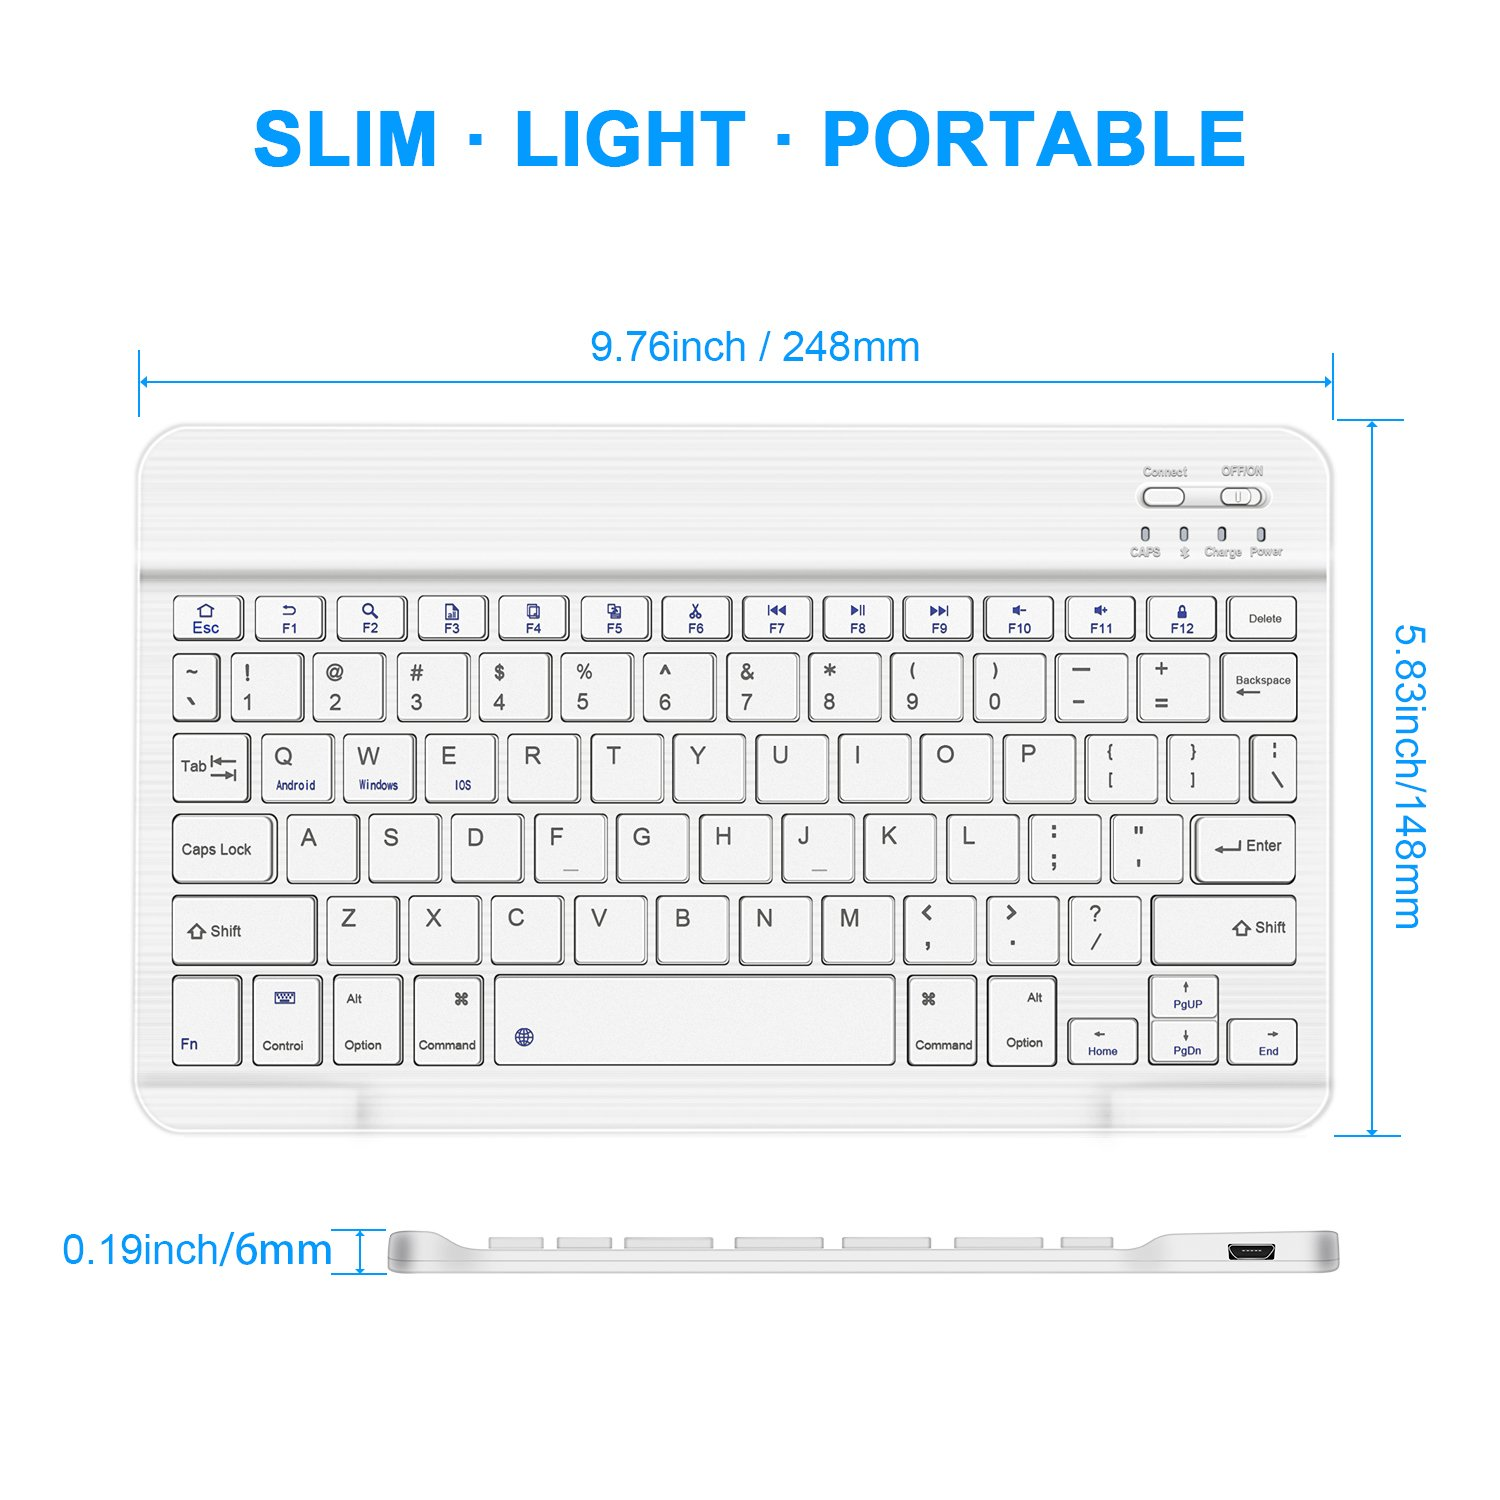 7.87 inch White Wireless Keyboard Tsmine Universal Ultra-Slim Bluetooth Keyboard Portable Wireless Keyboard for iOS//Android//Windows Mac OS PC Tablet and Other Bluetooth Enabled Devices